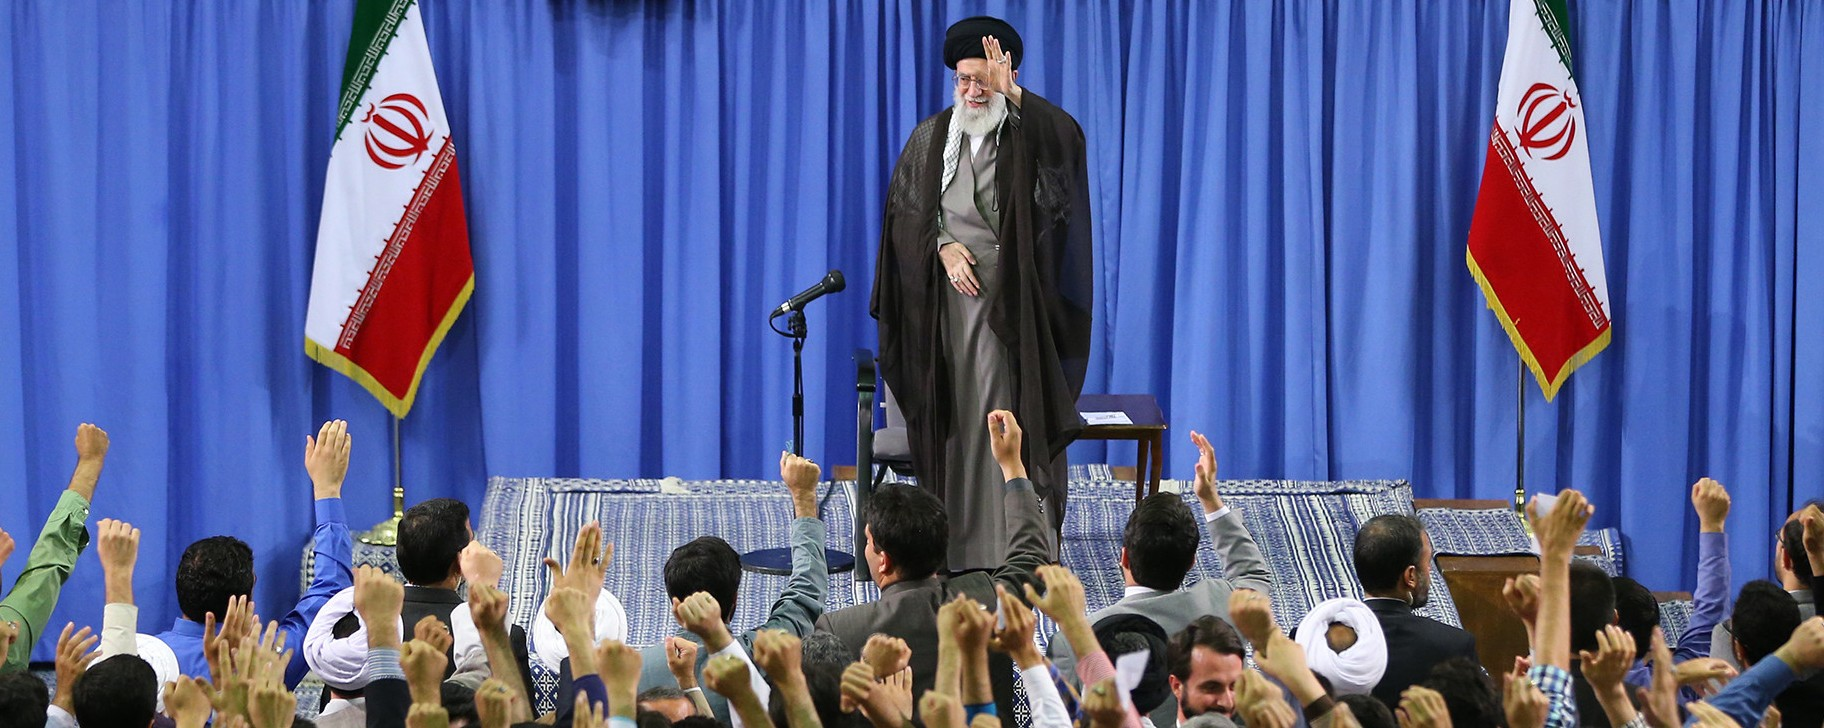 When Iran's Supreme Leader Says 'Death to America' He Doesn't Mean You